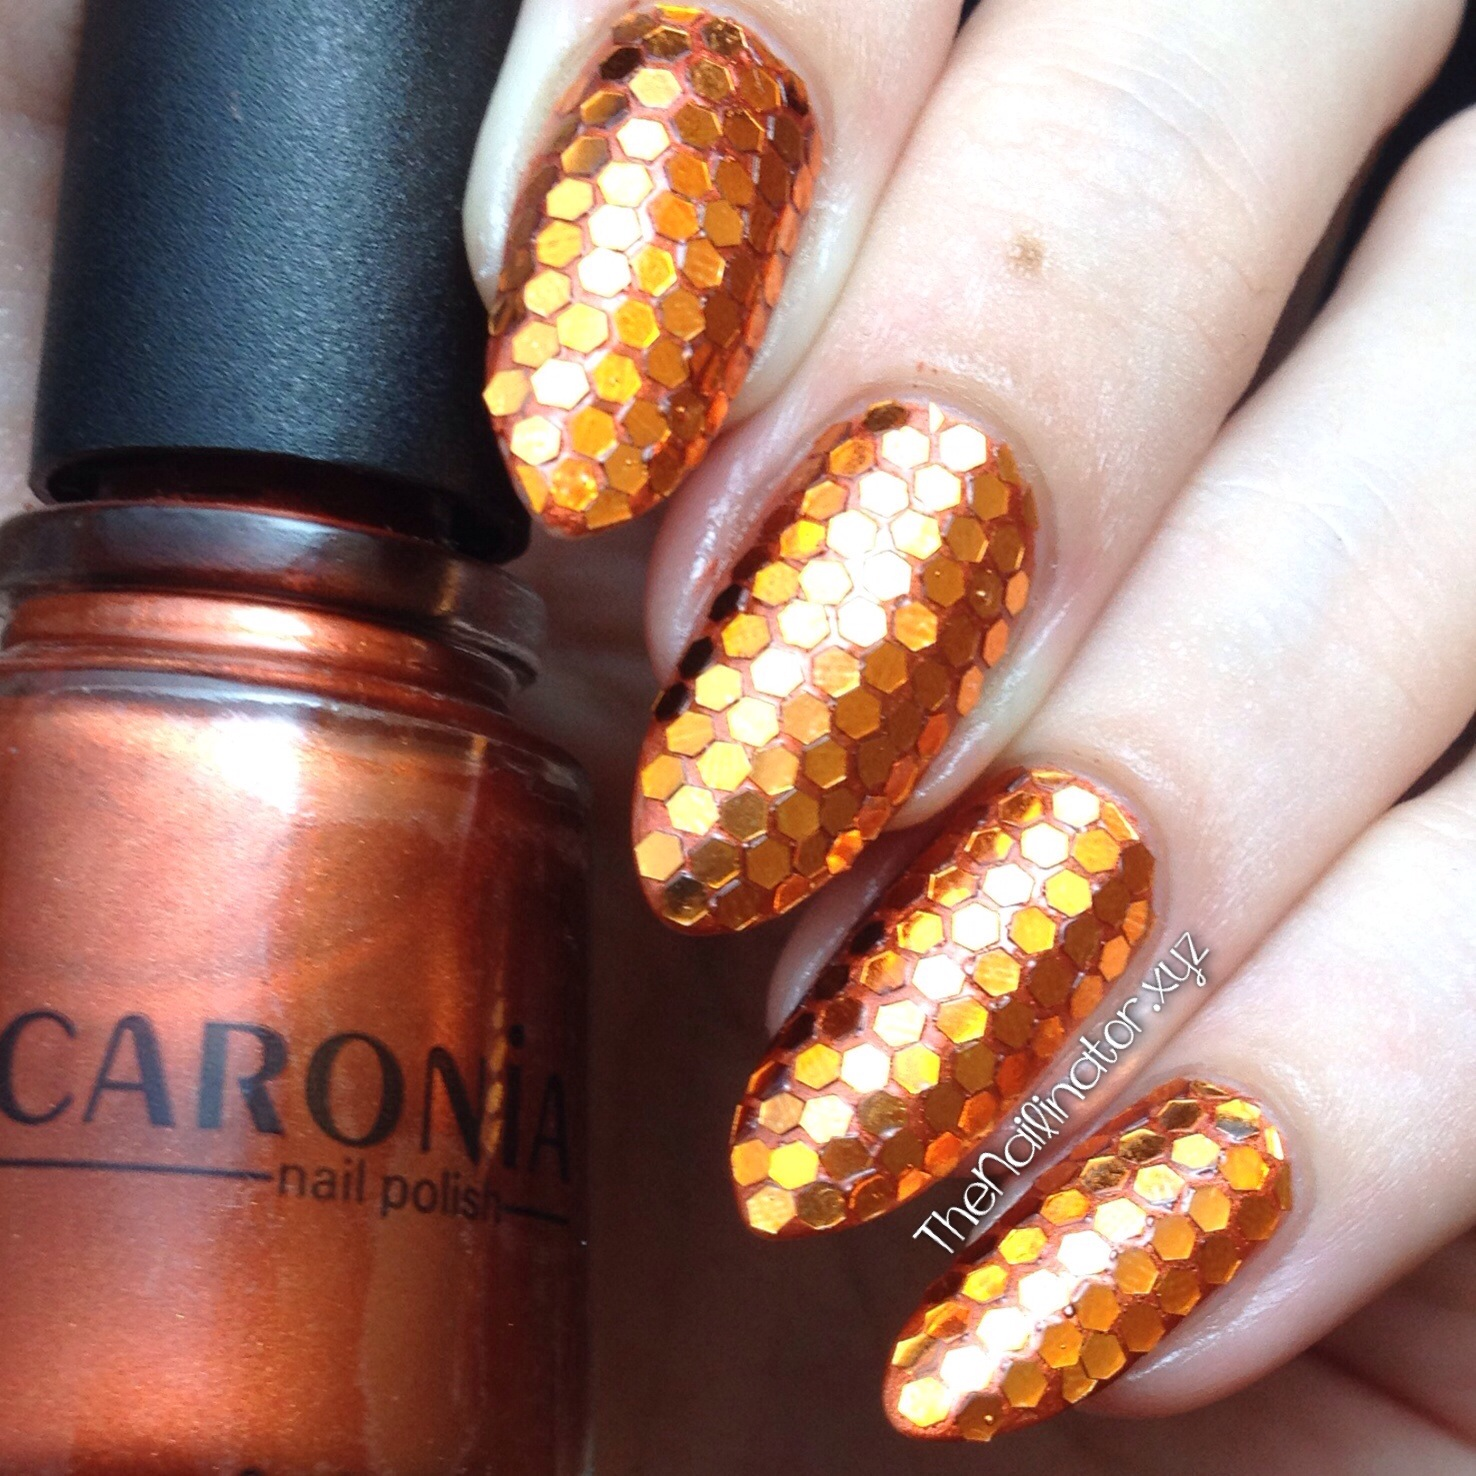 Hexagon glitter nail art image collections nail art and nail nail art supply review archives the nailinator orange hexagonal glitter over caronia bourre prinsesfo image collections prinsesfo Gallery